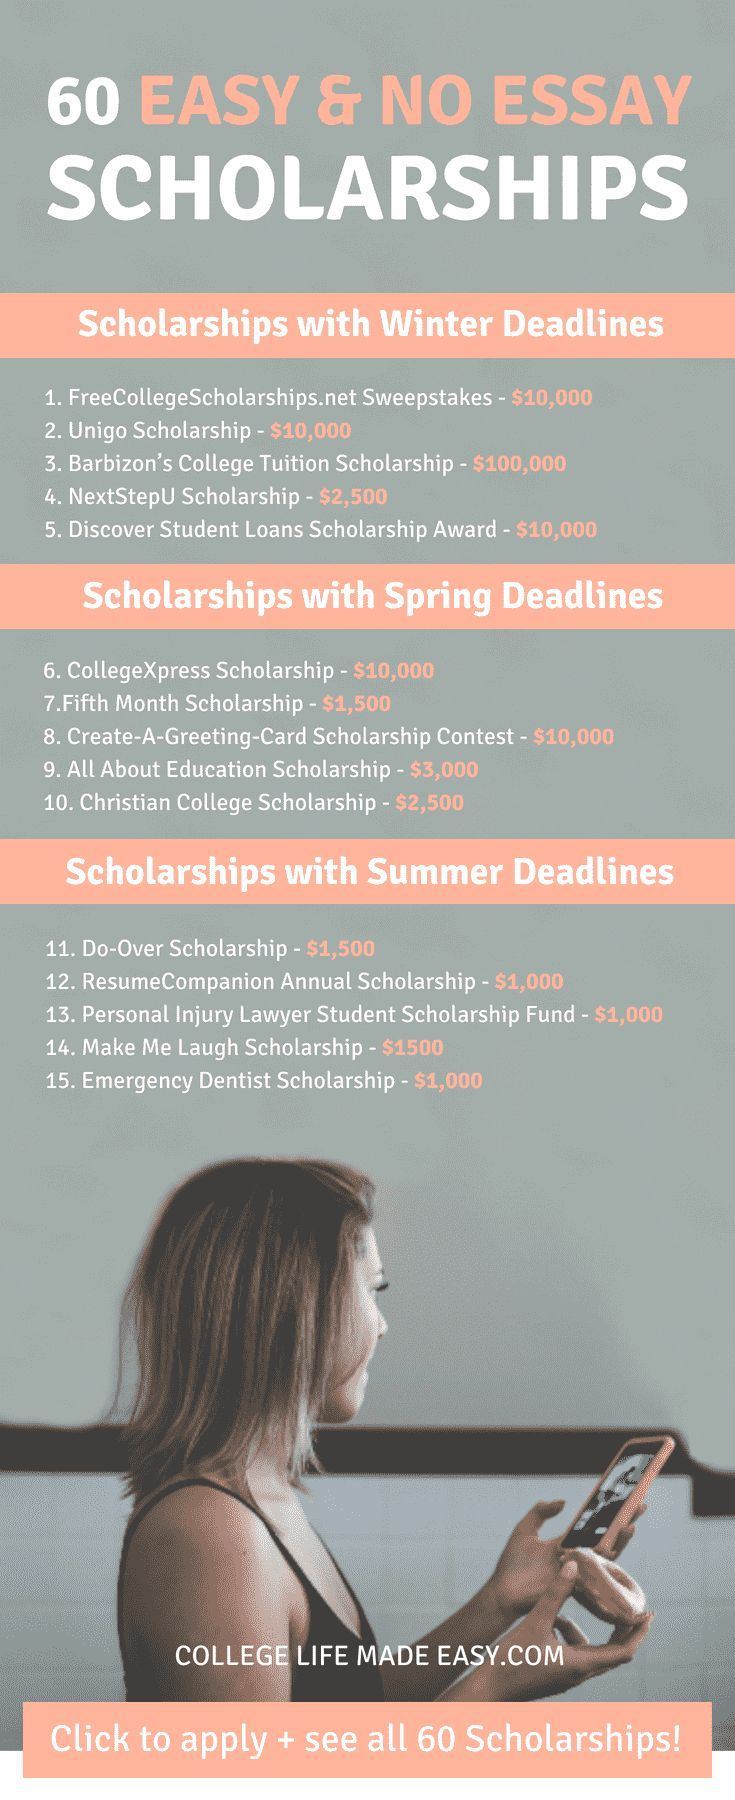 012 Essay Example Scholarship Awesome No For College Students Free Scholarships Required Hispanic Full